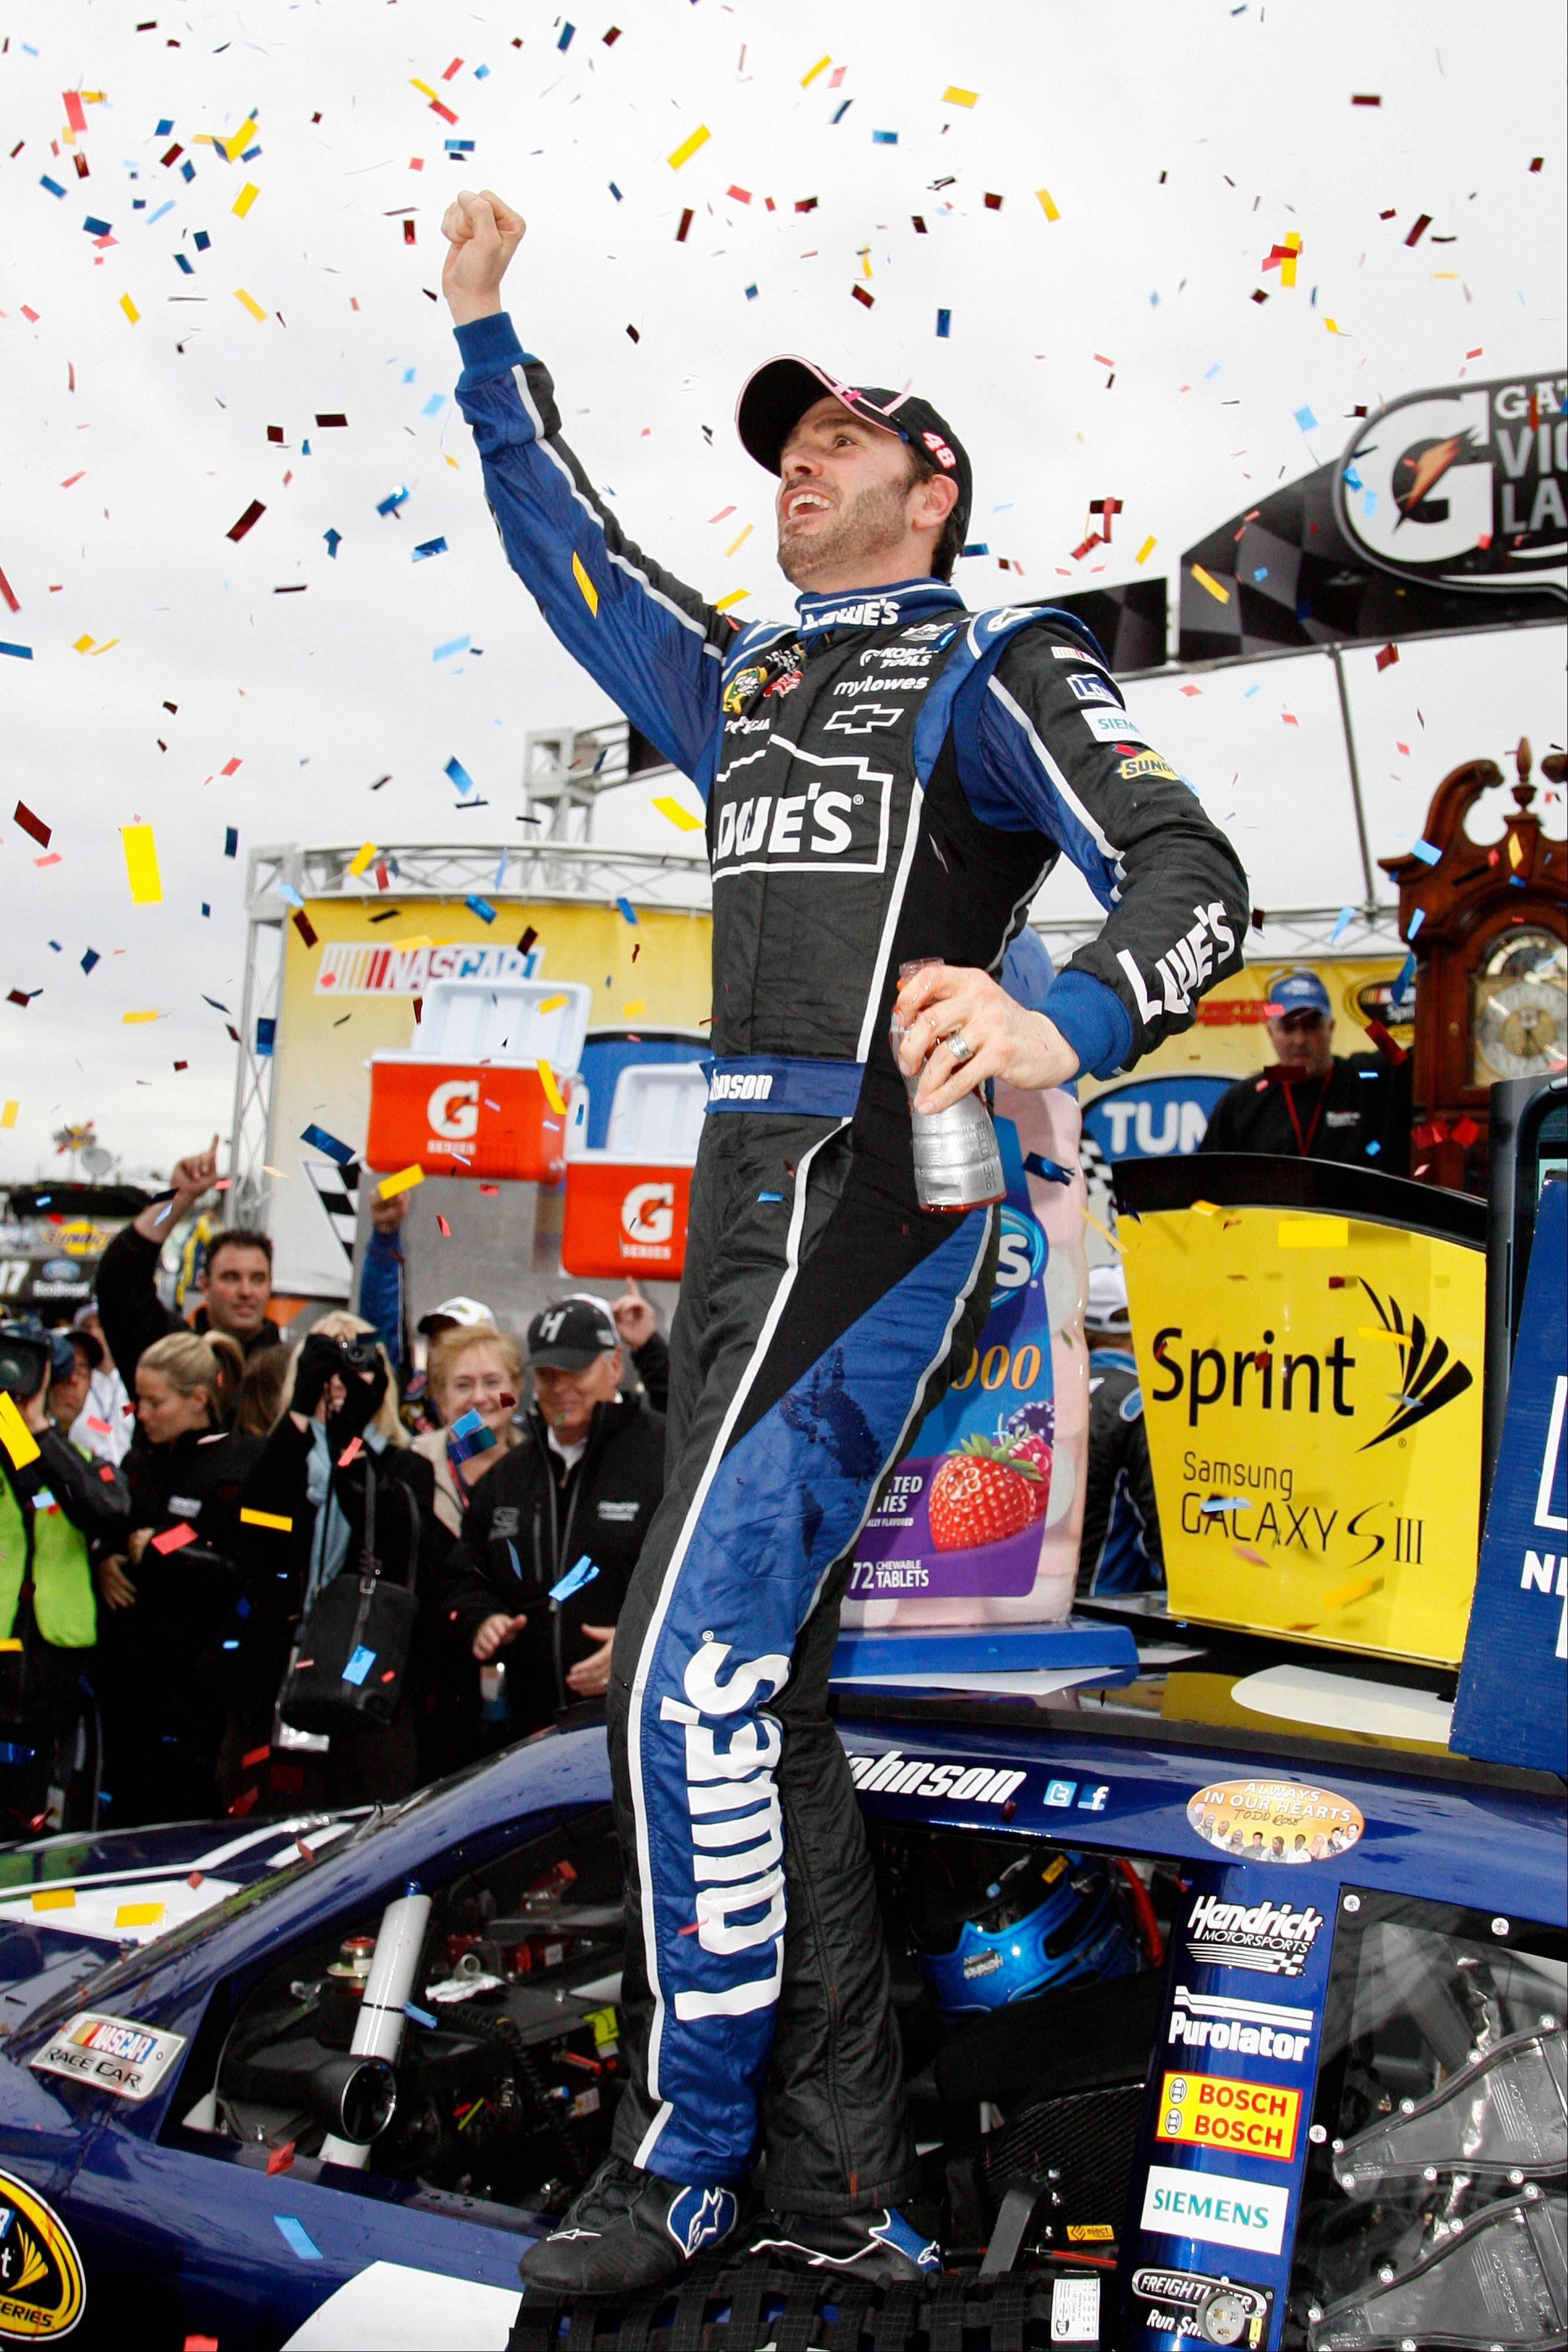 Jimmie Johnson celebrates his win after the NASCAR Sprint Cup Series auto race at Martinsville Speedway, Sunday, in Martinsville, Va.